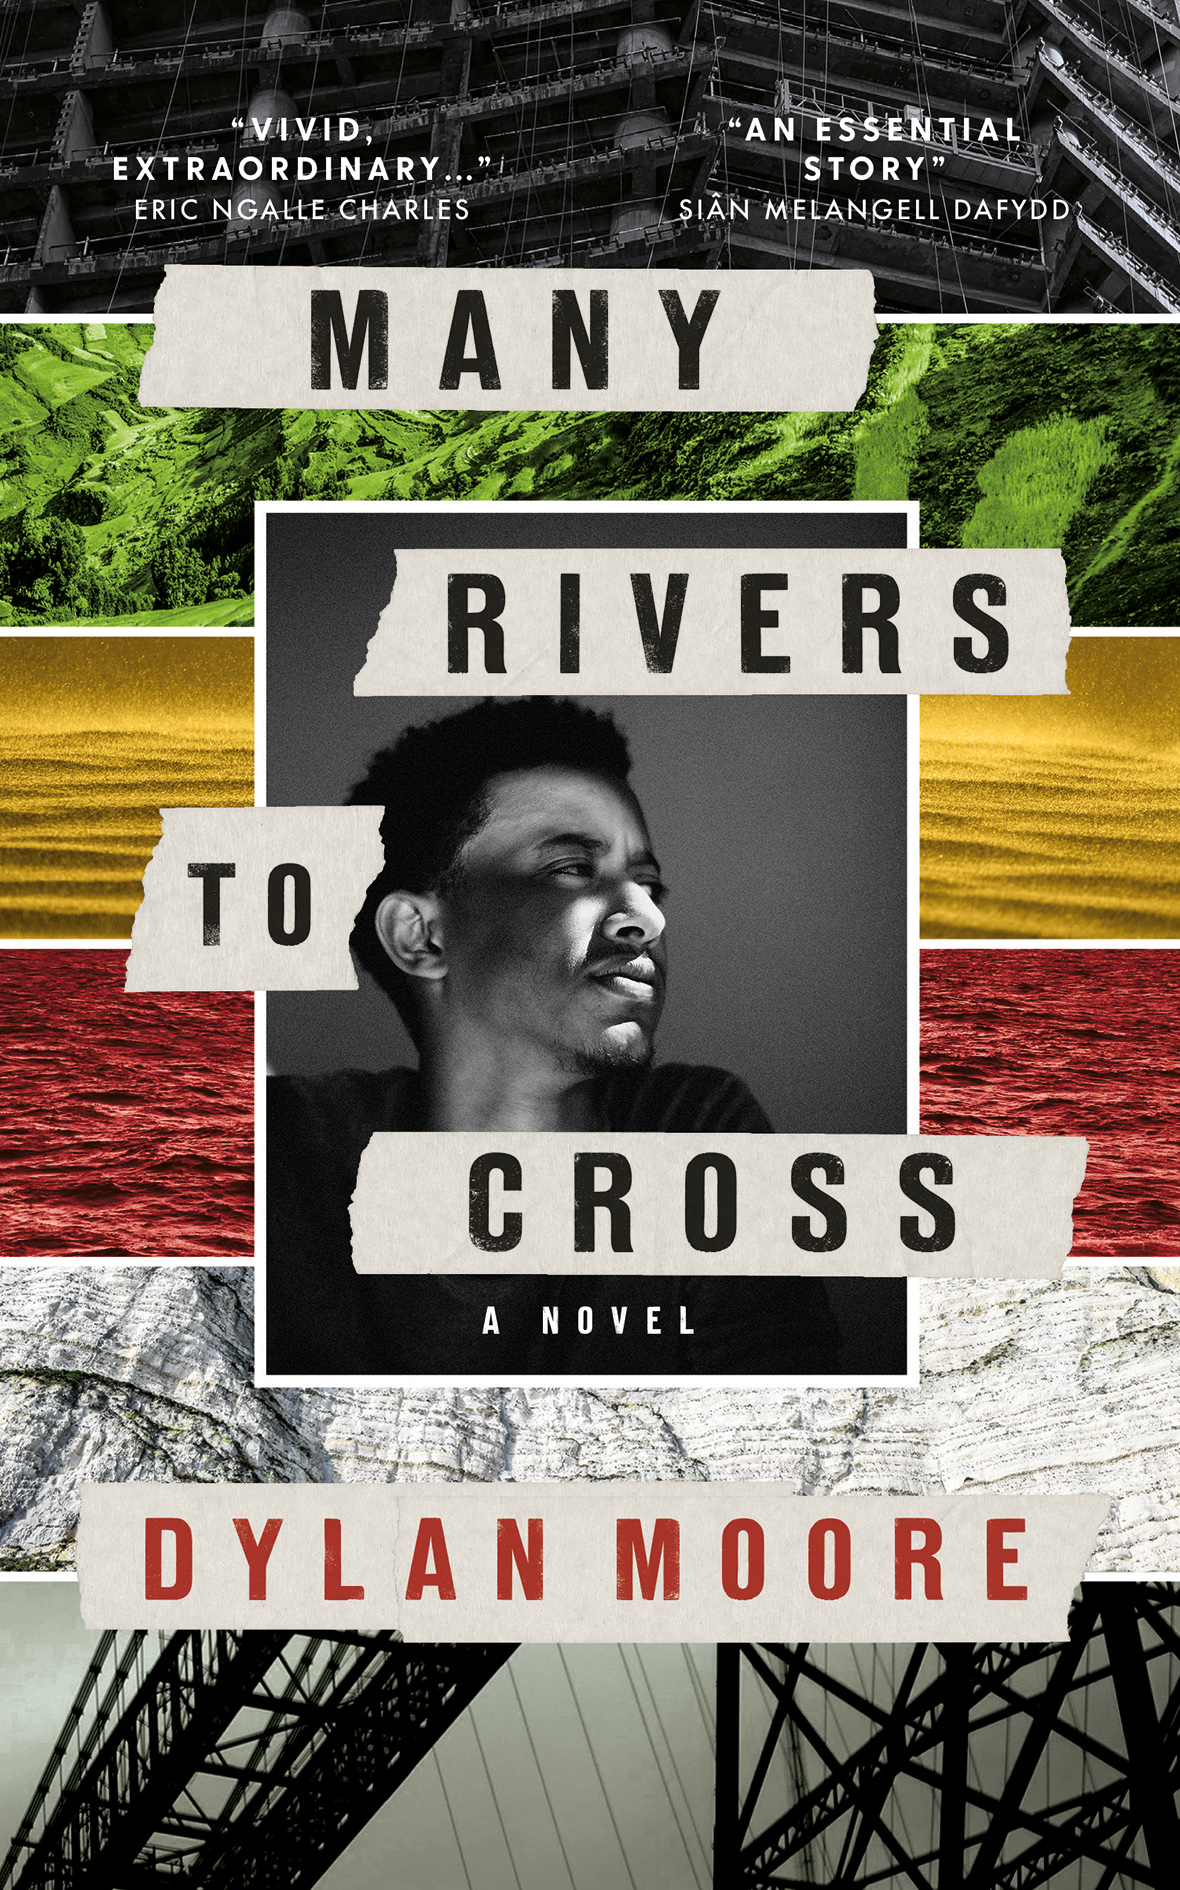 Image of many Rivers to Cross book cover